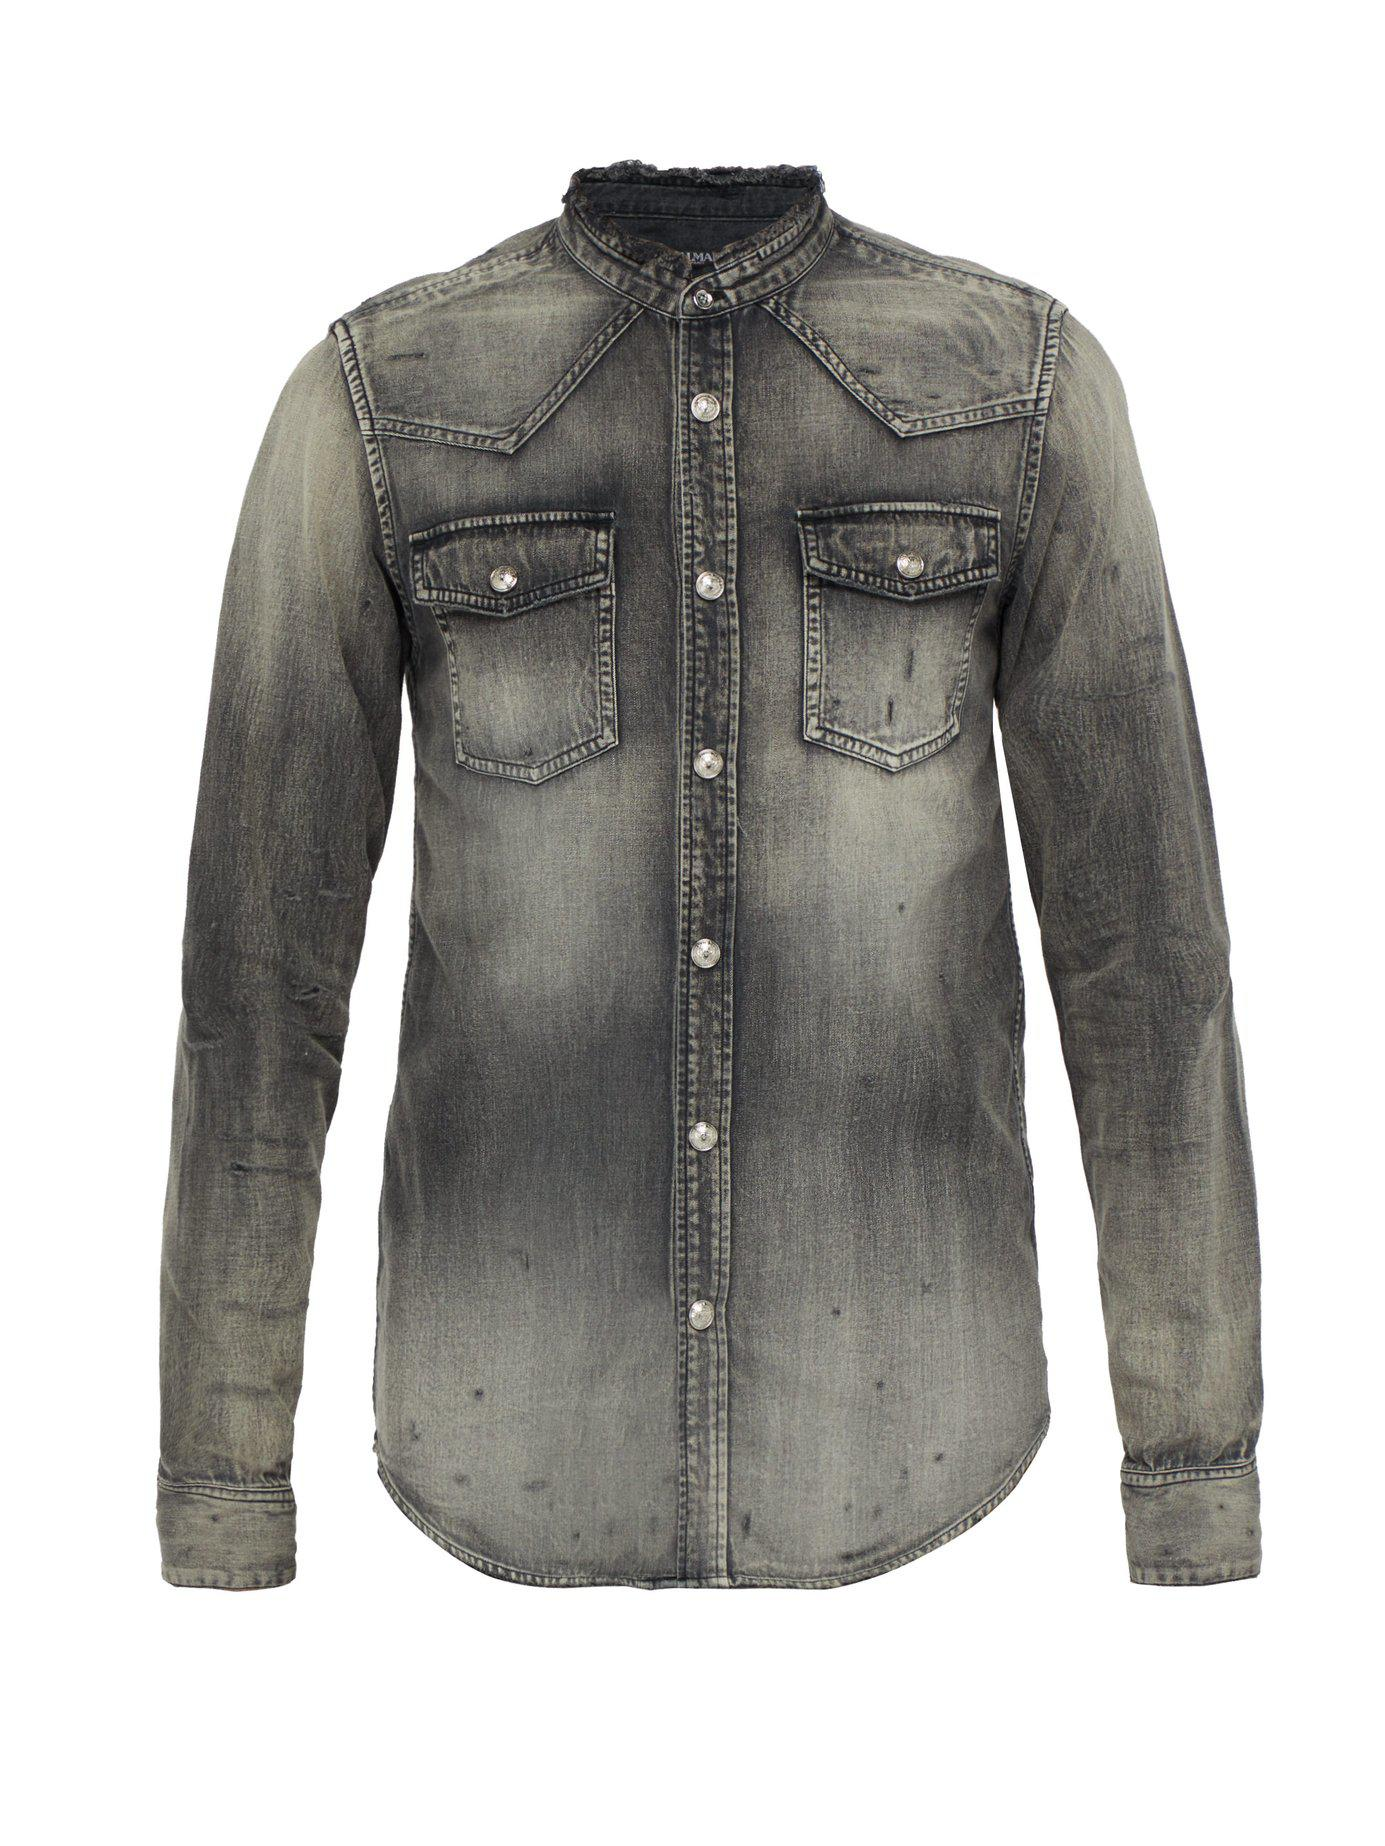 7be3a4f85a Lyst - Balmain Western Distressed Denim Shirt in Black for Men